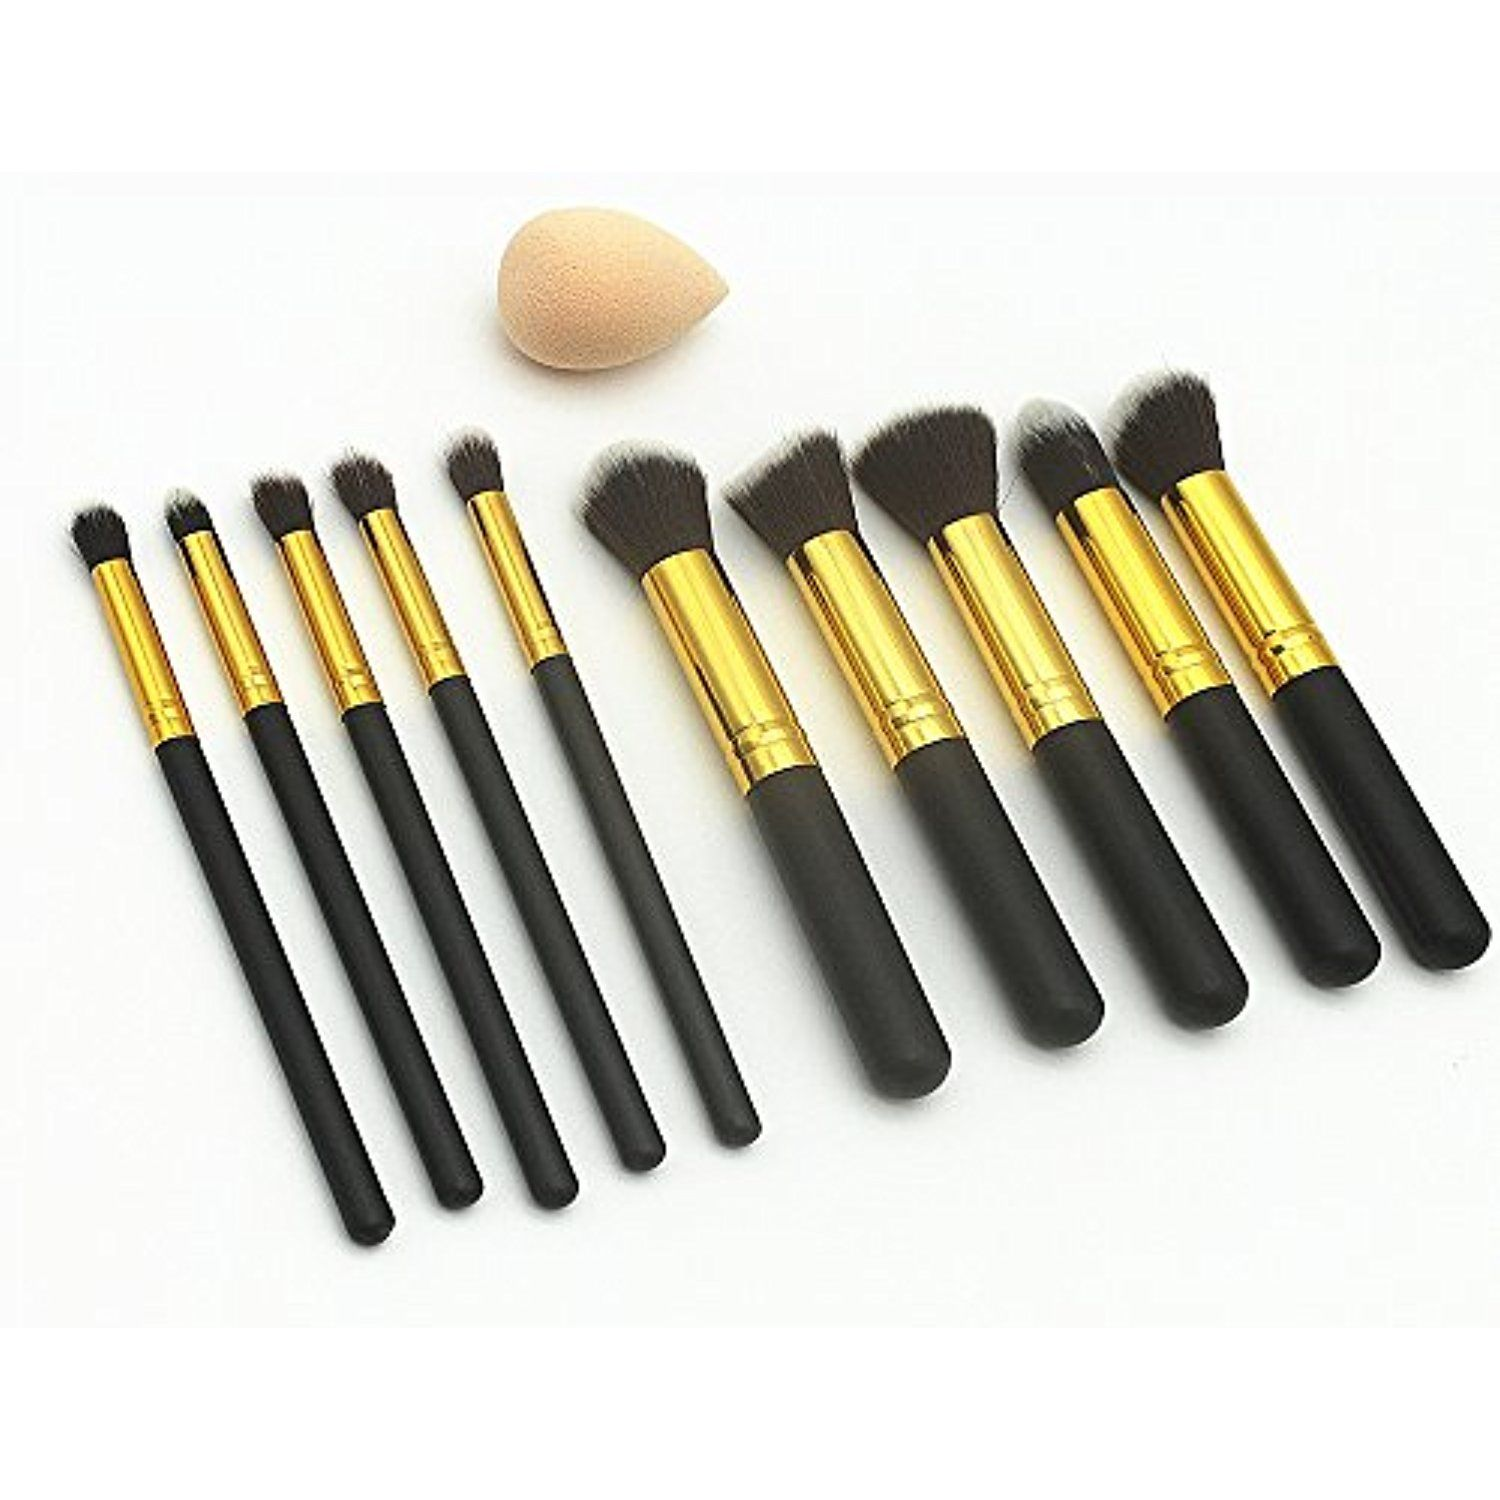 Makeup Brushes 11pcsset Professional Makeup Brush Cheap Eye Makeup